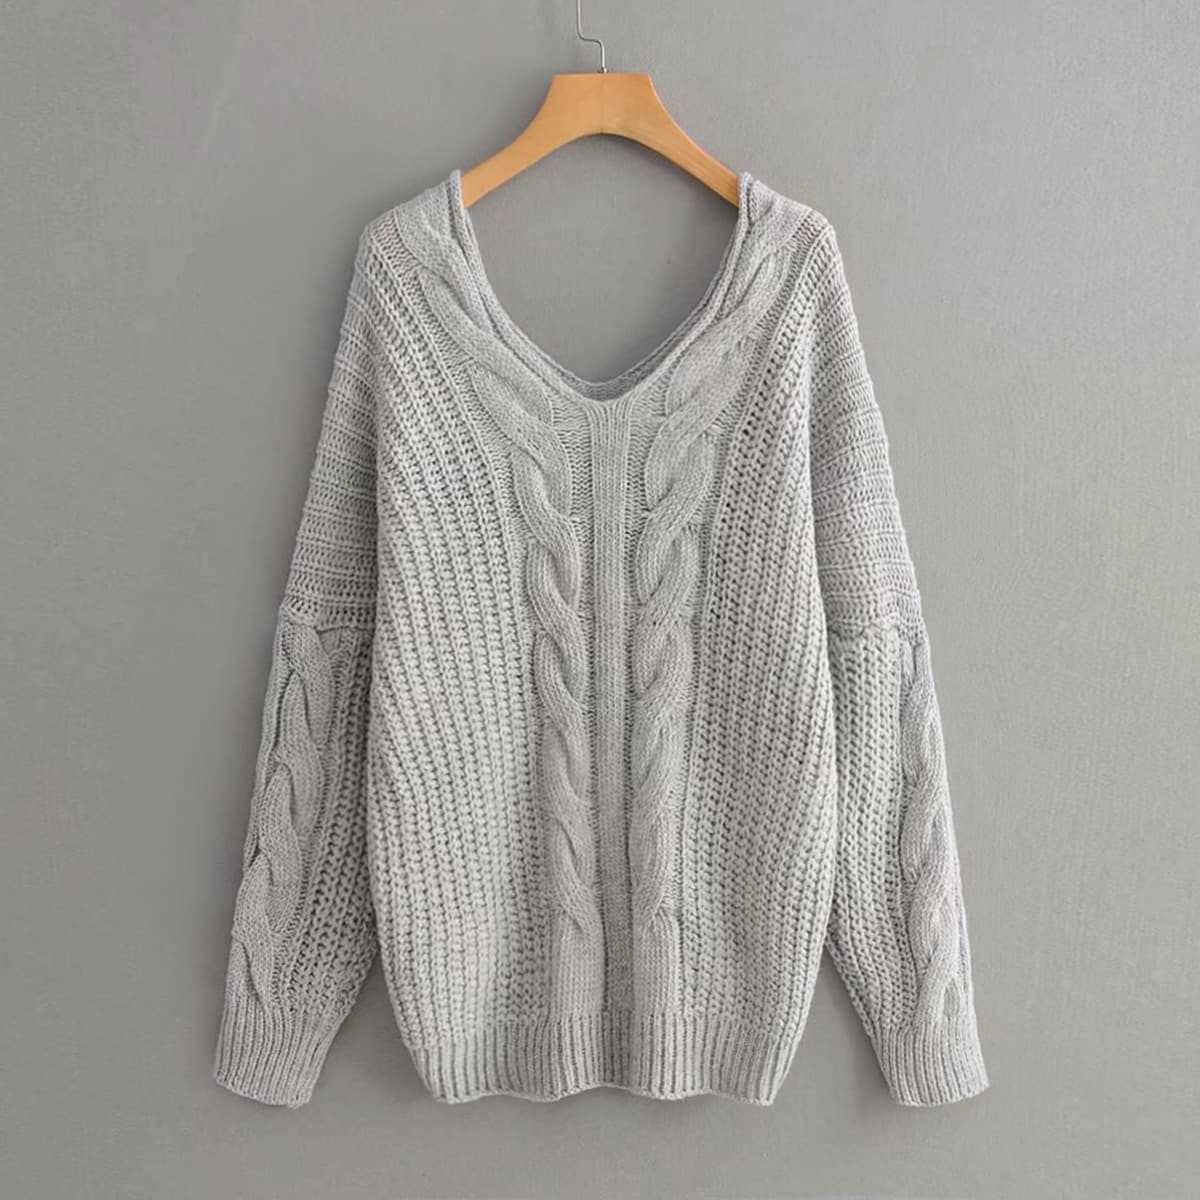 V Neck Drop Shoulder Cable Knit Sweater in Grey by ROMWE on GOOFASH